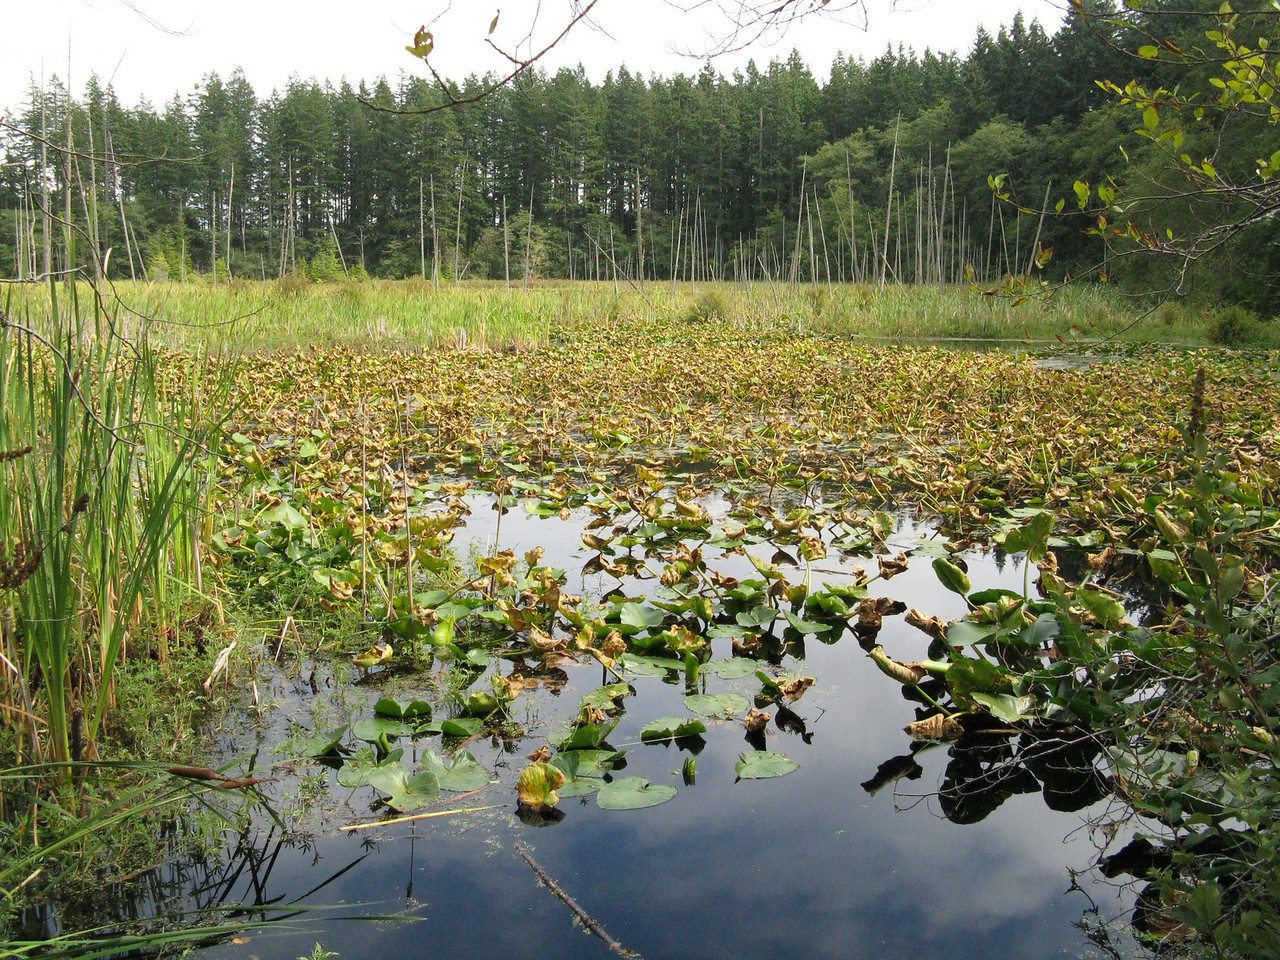 Cranberry Lake.  It was covered with vegetation.  We thought it should be named Cranberry bog or swamp.